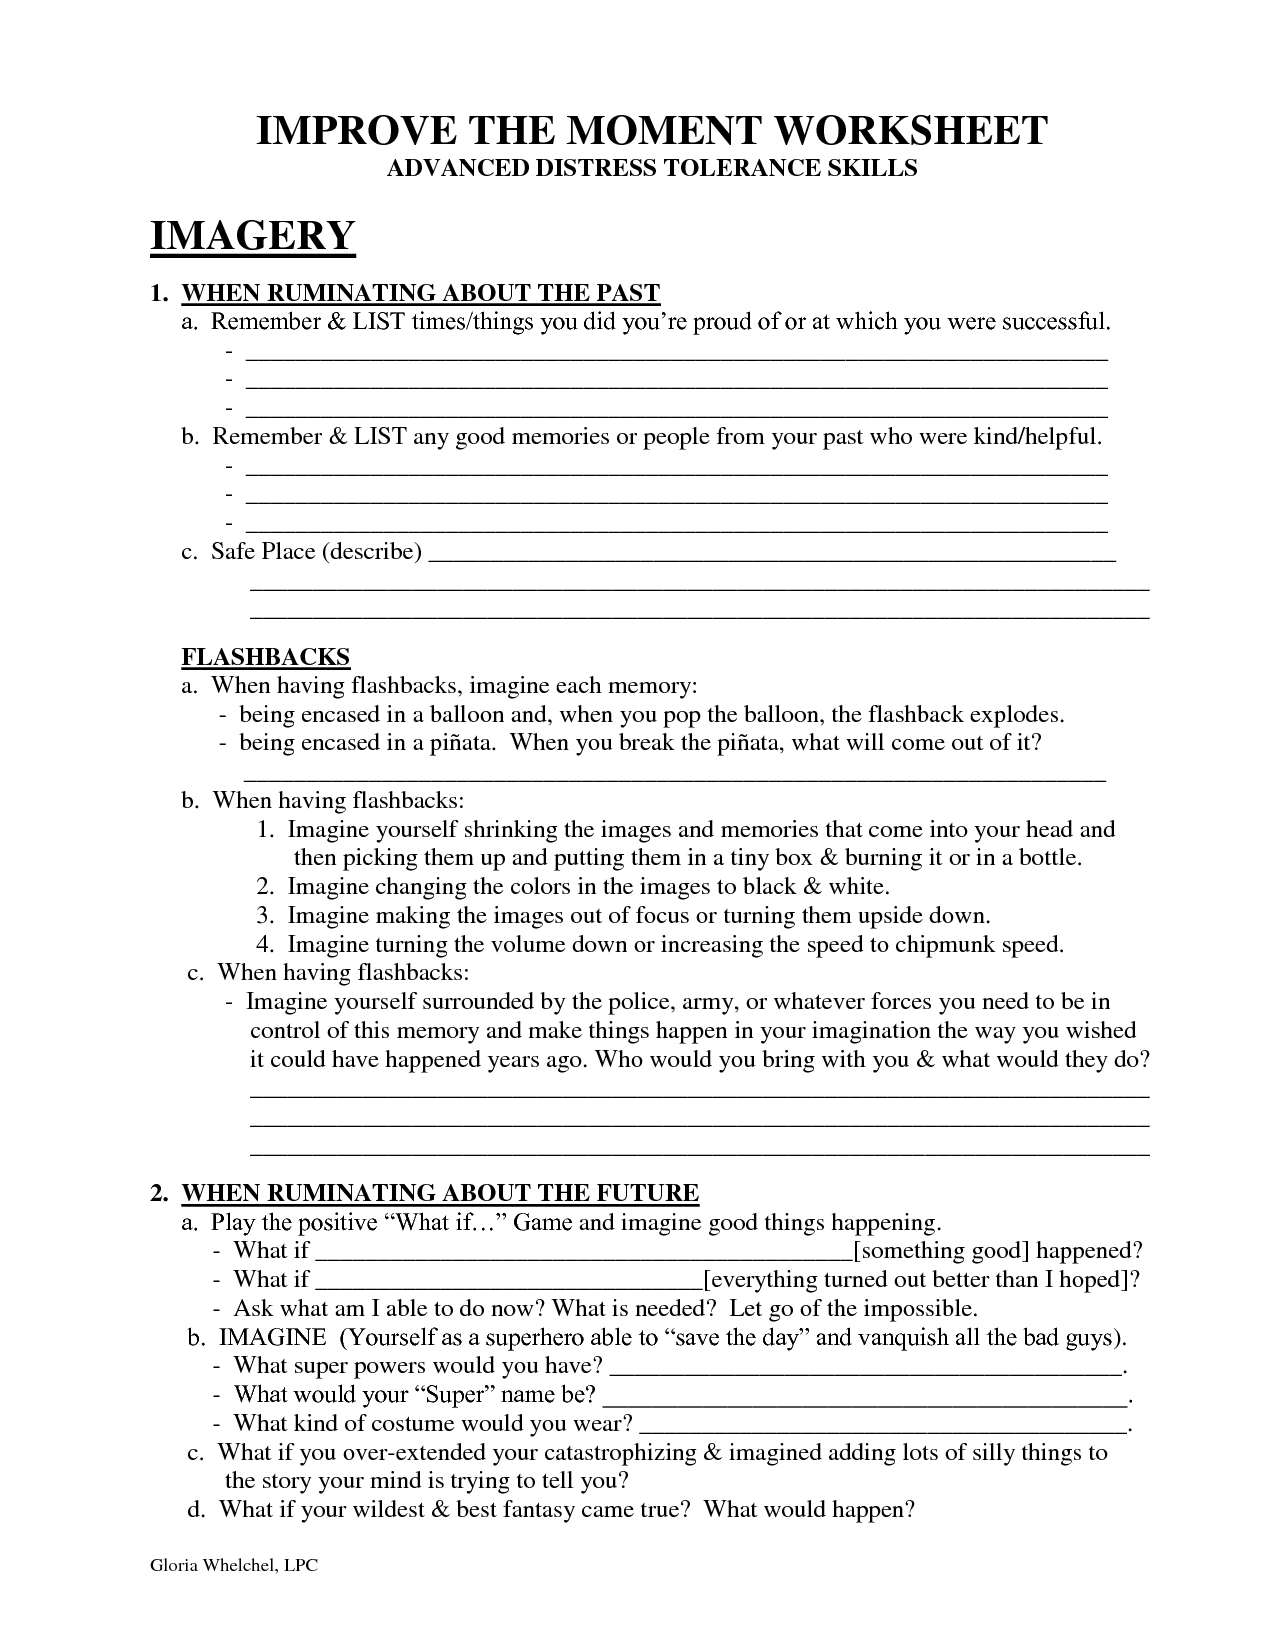 worksheet Communication Skills Worksheets For Adults improve the moment worksheet dbt self help psycho pinterest help